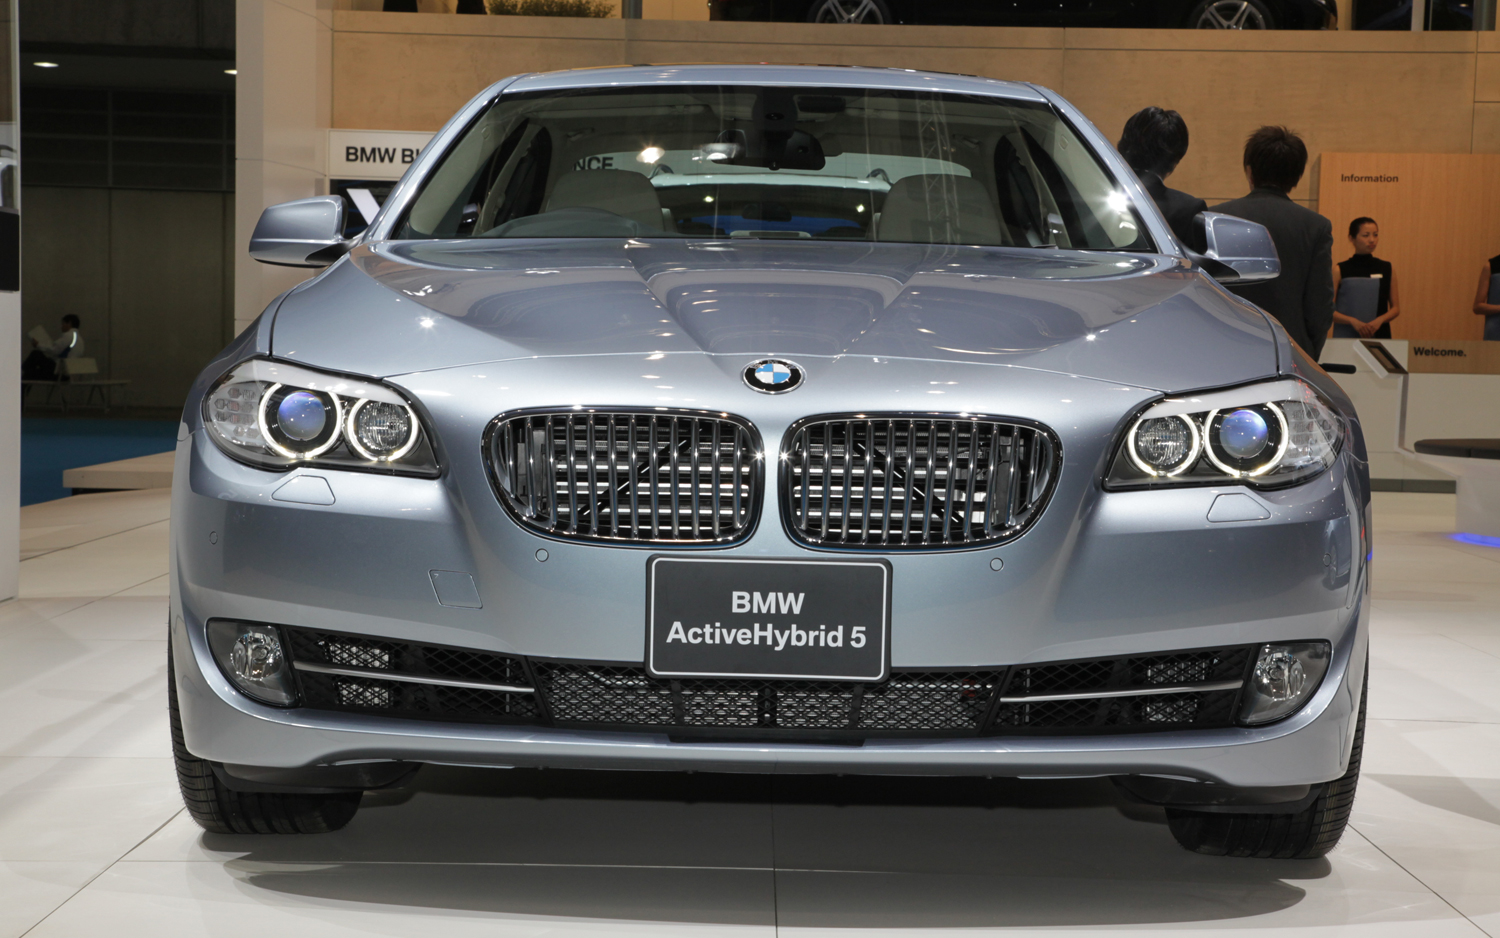 2015 Bmw Activehybrid 5 #6